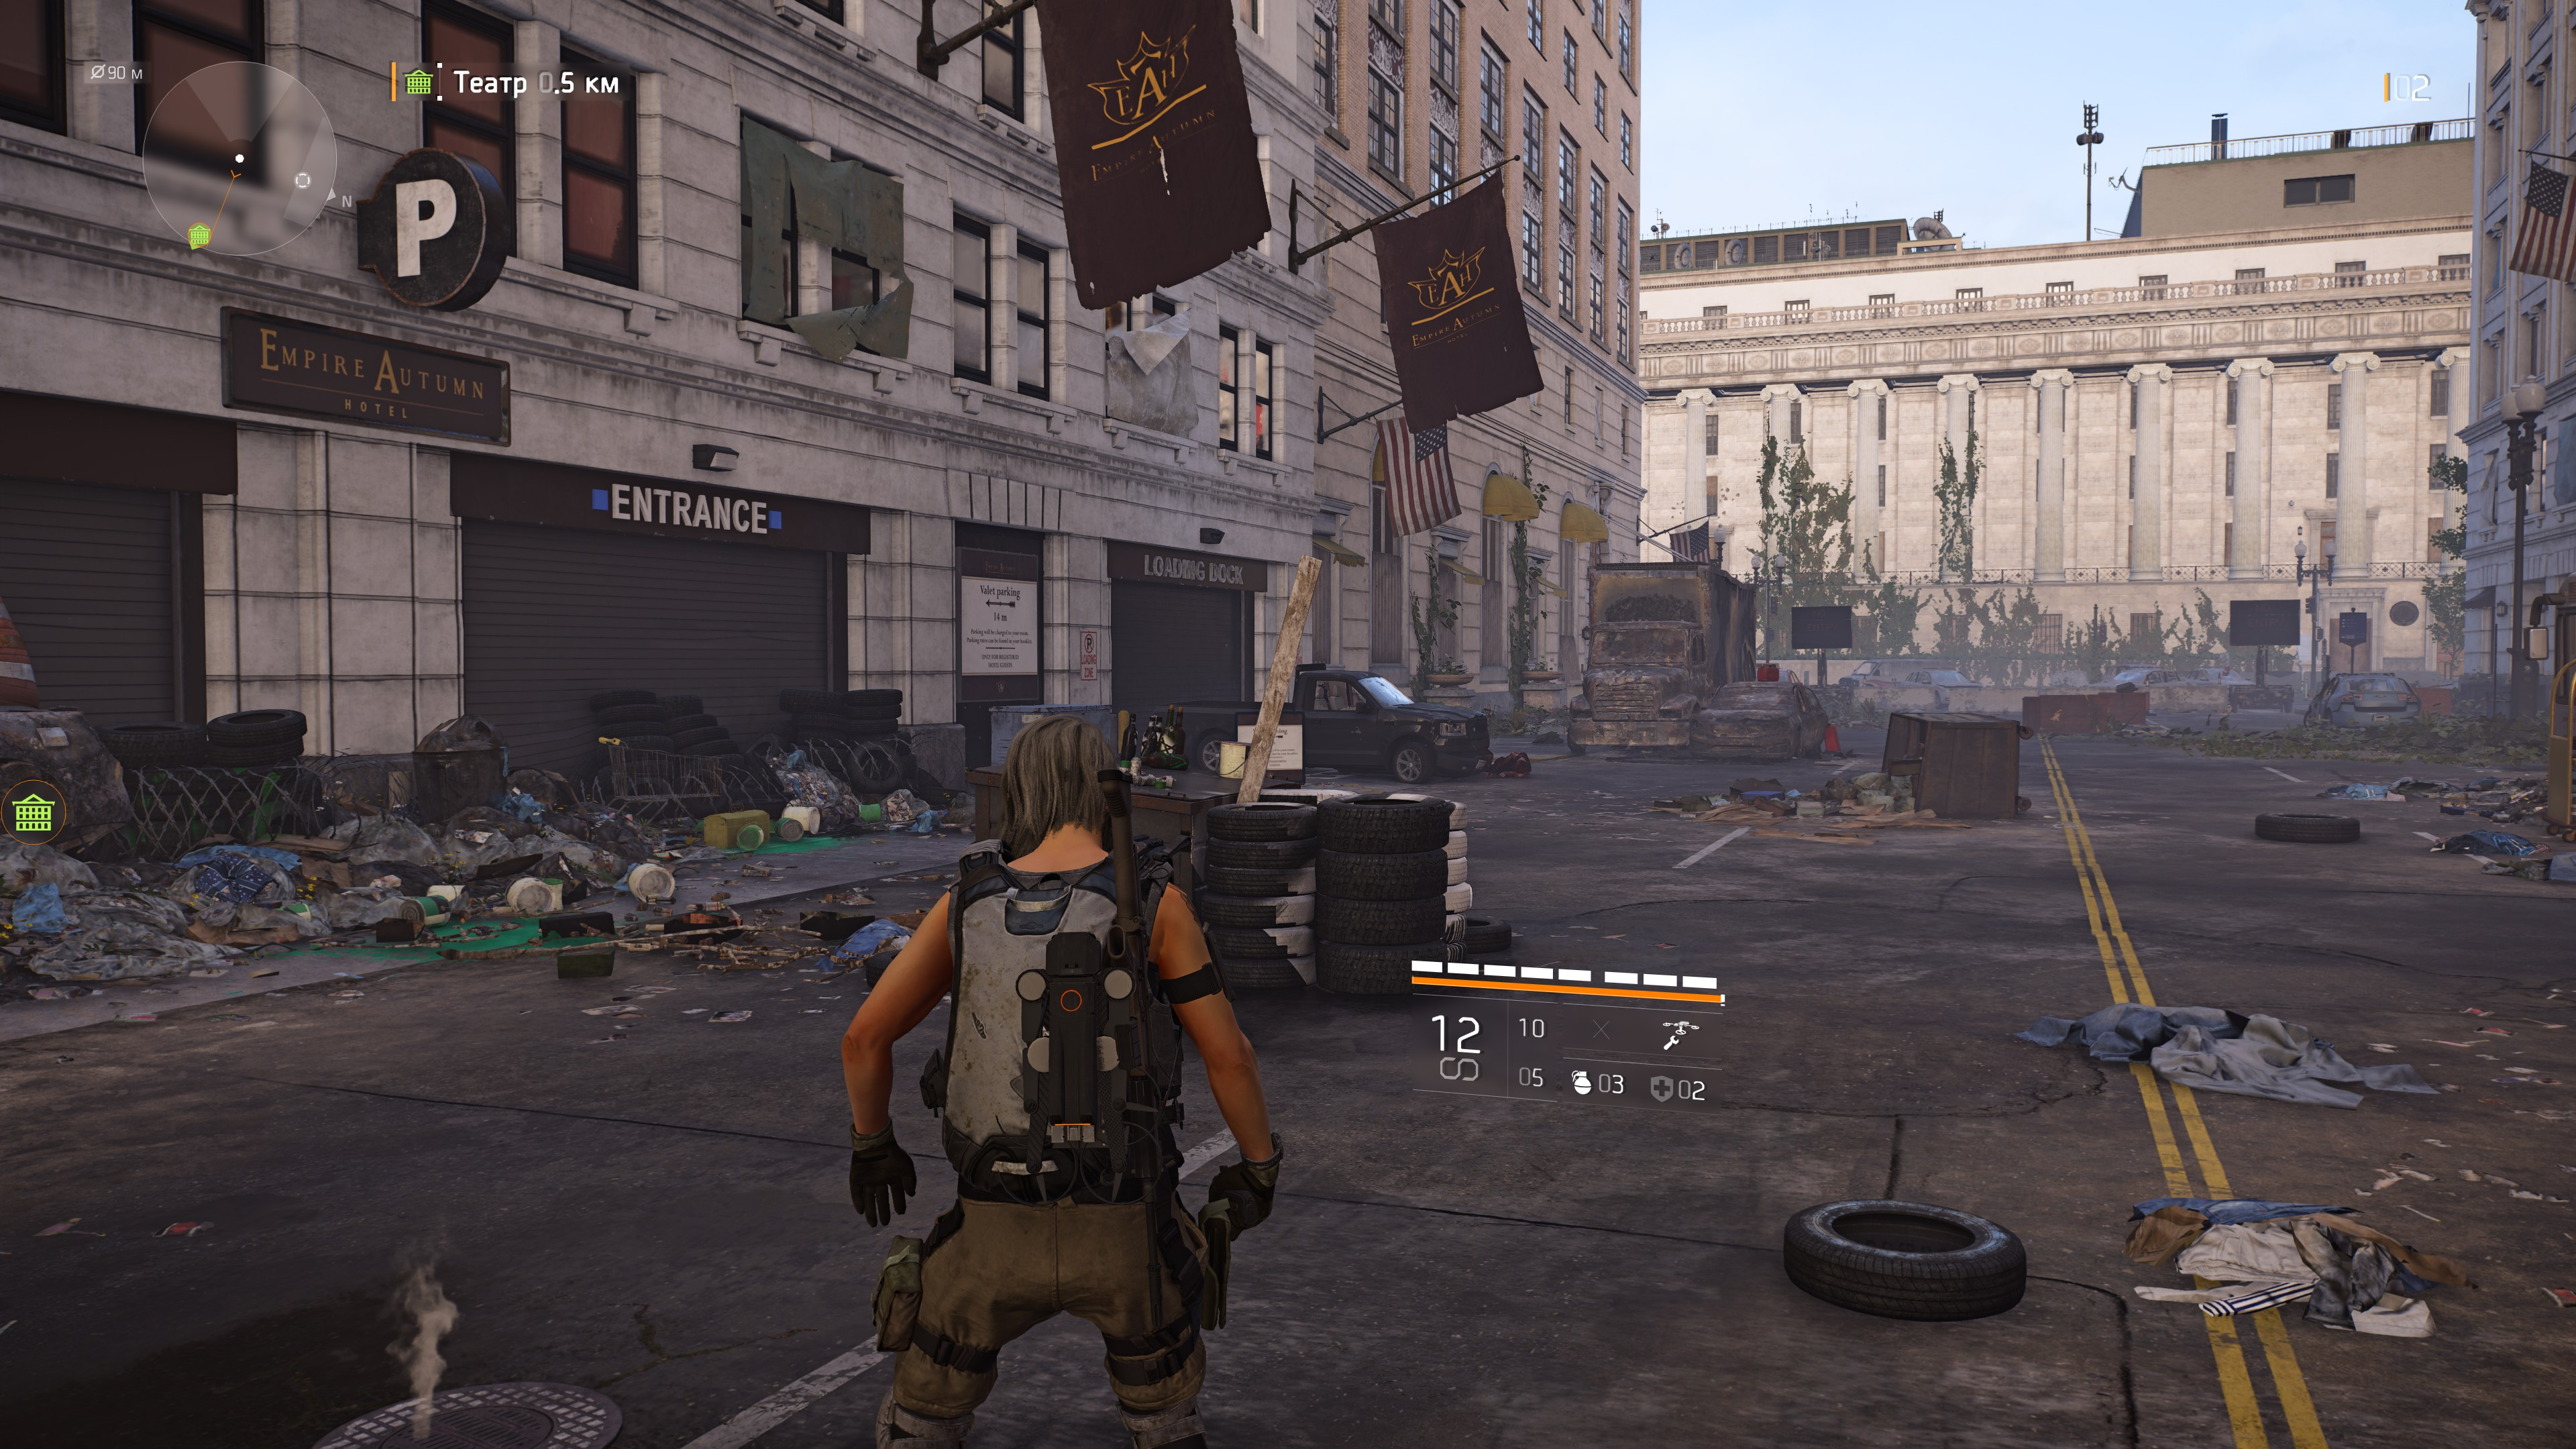 Tom Clancy's The Division® 22020-3-1-6-51-51.jpg - Tom Clancy's The Division 2